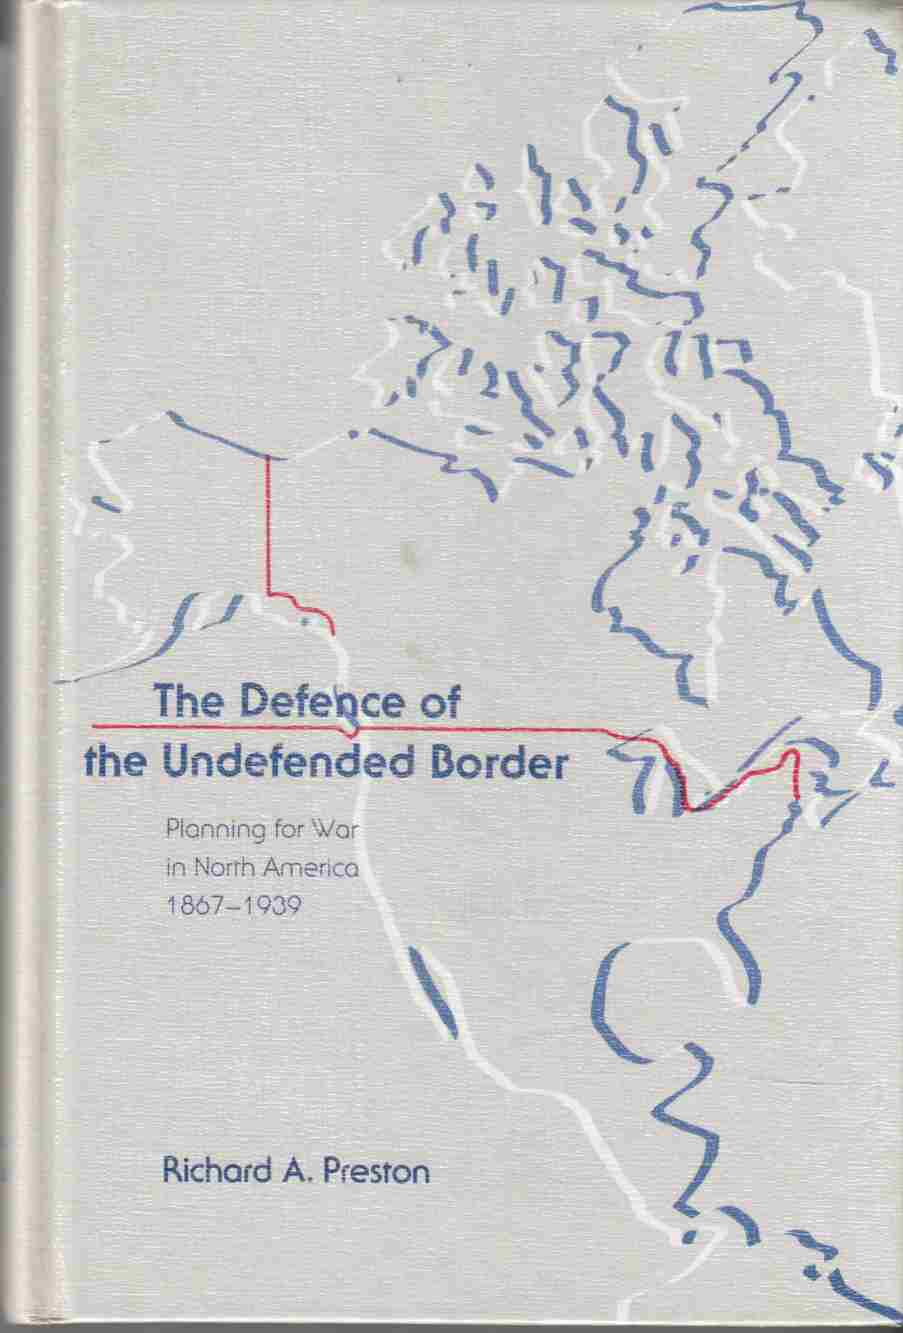 Image for The Defence of the Undefended Border Planning for War in North America 1867 - 1939